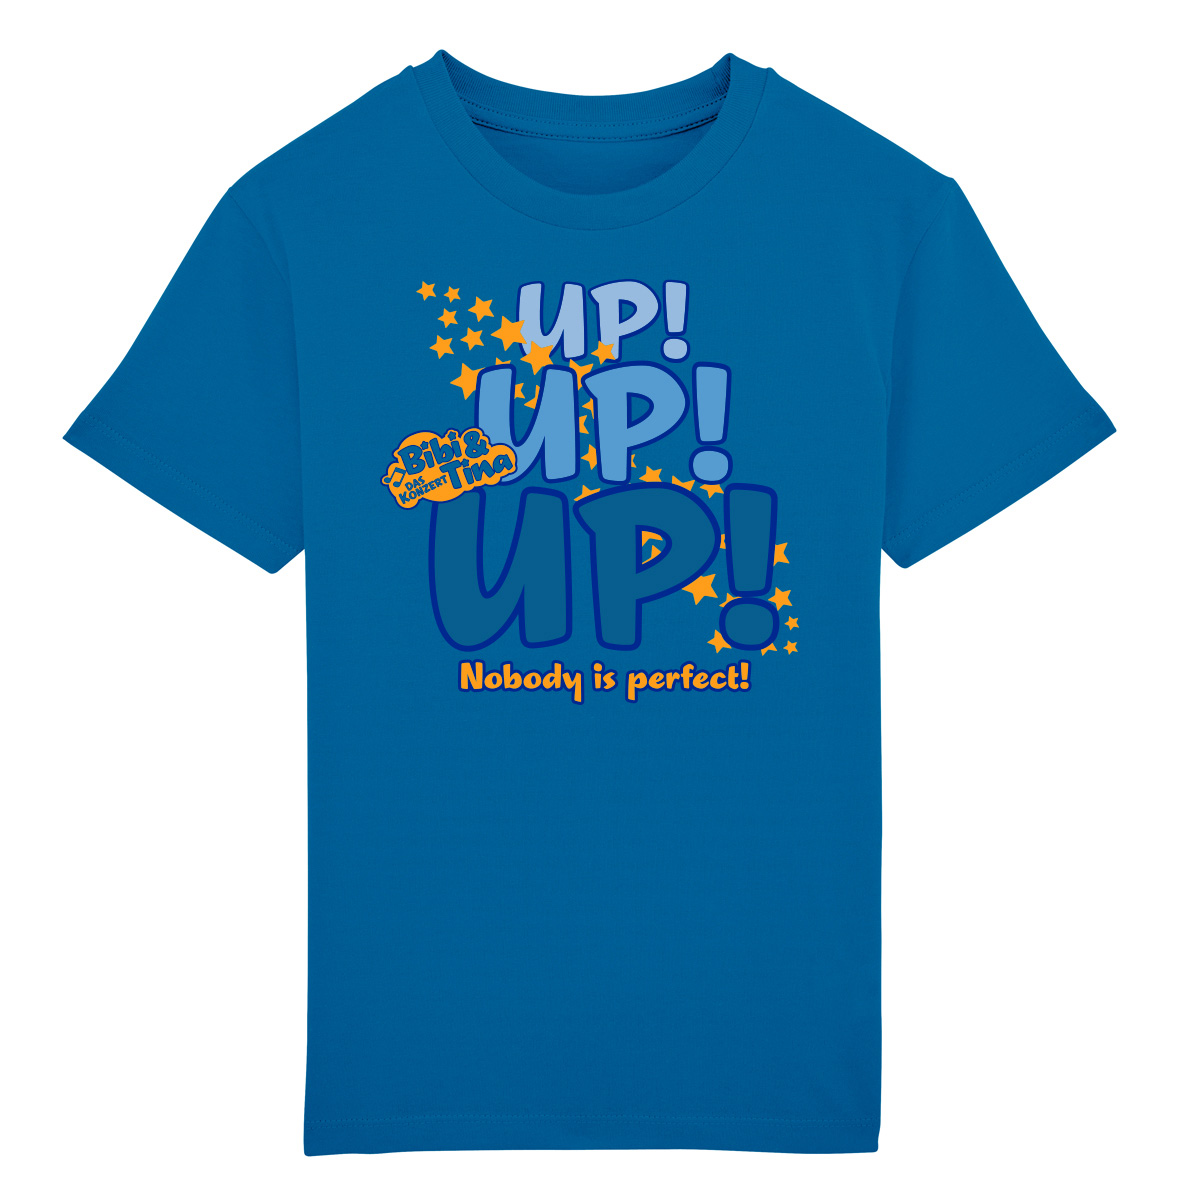 Bibi&Tina UP! UP! UP! Nobody is Perfect! Kids T-Shirt, azur